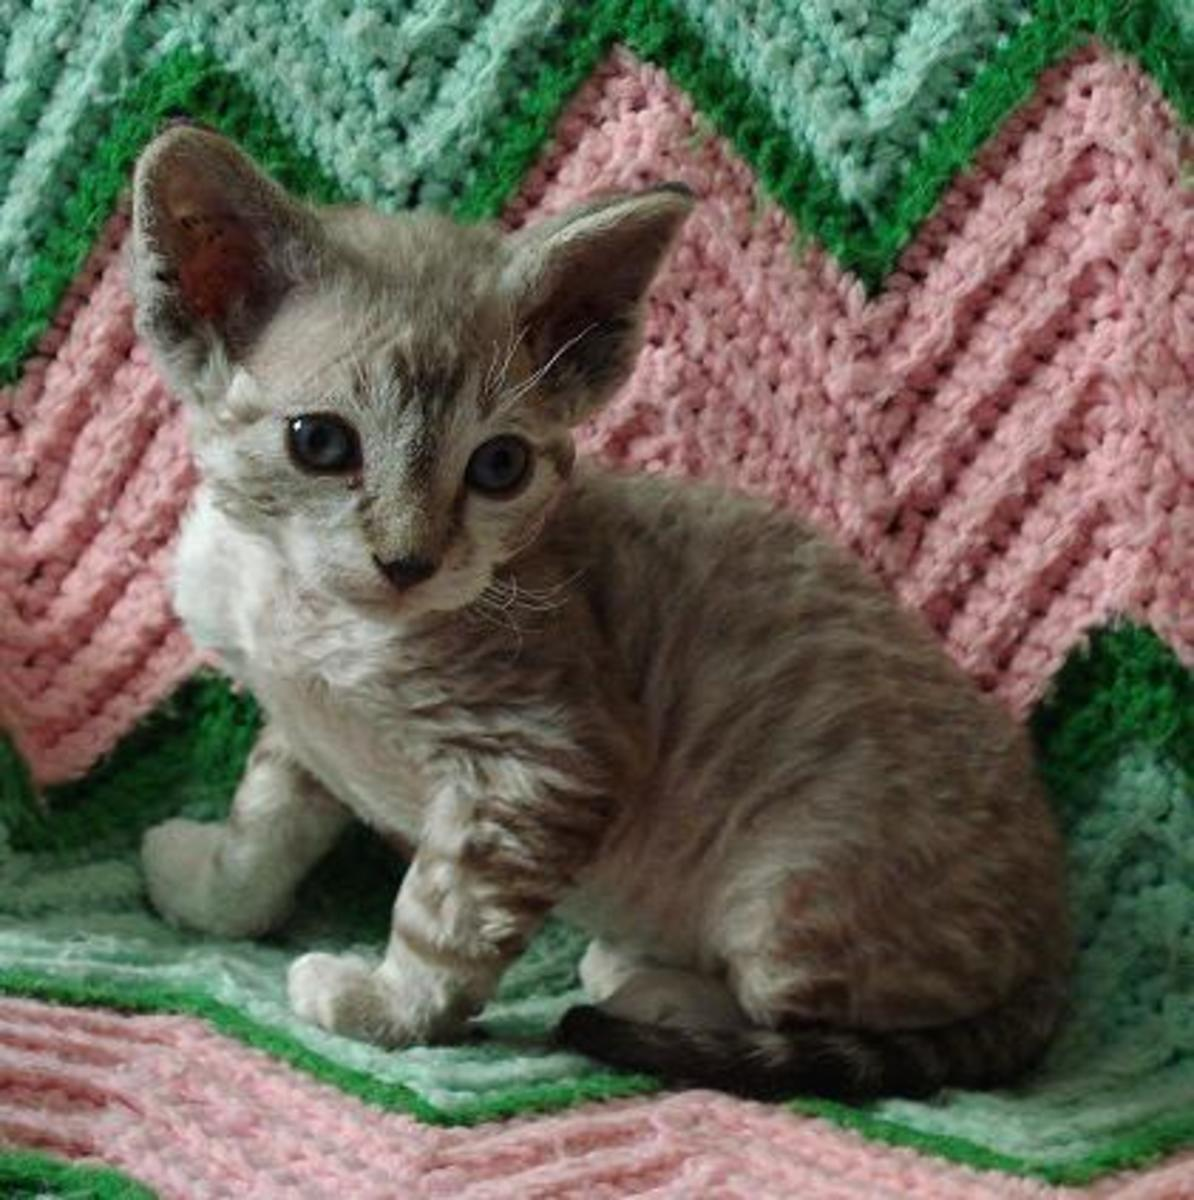 This is Skivvy, a Devon Rex, with a soft curly coat, yet another encouraged mutation.